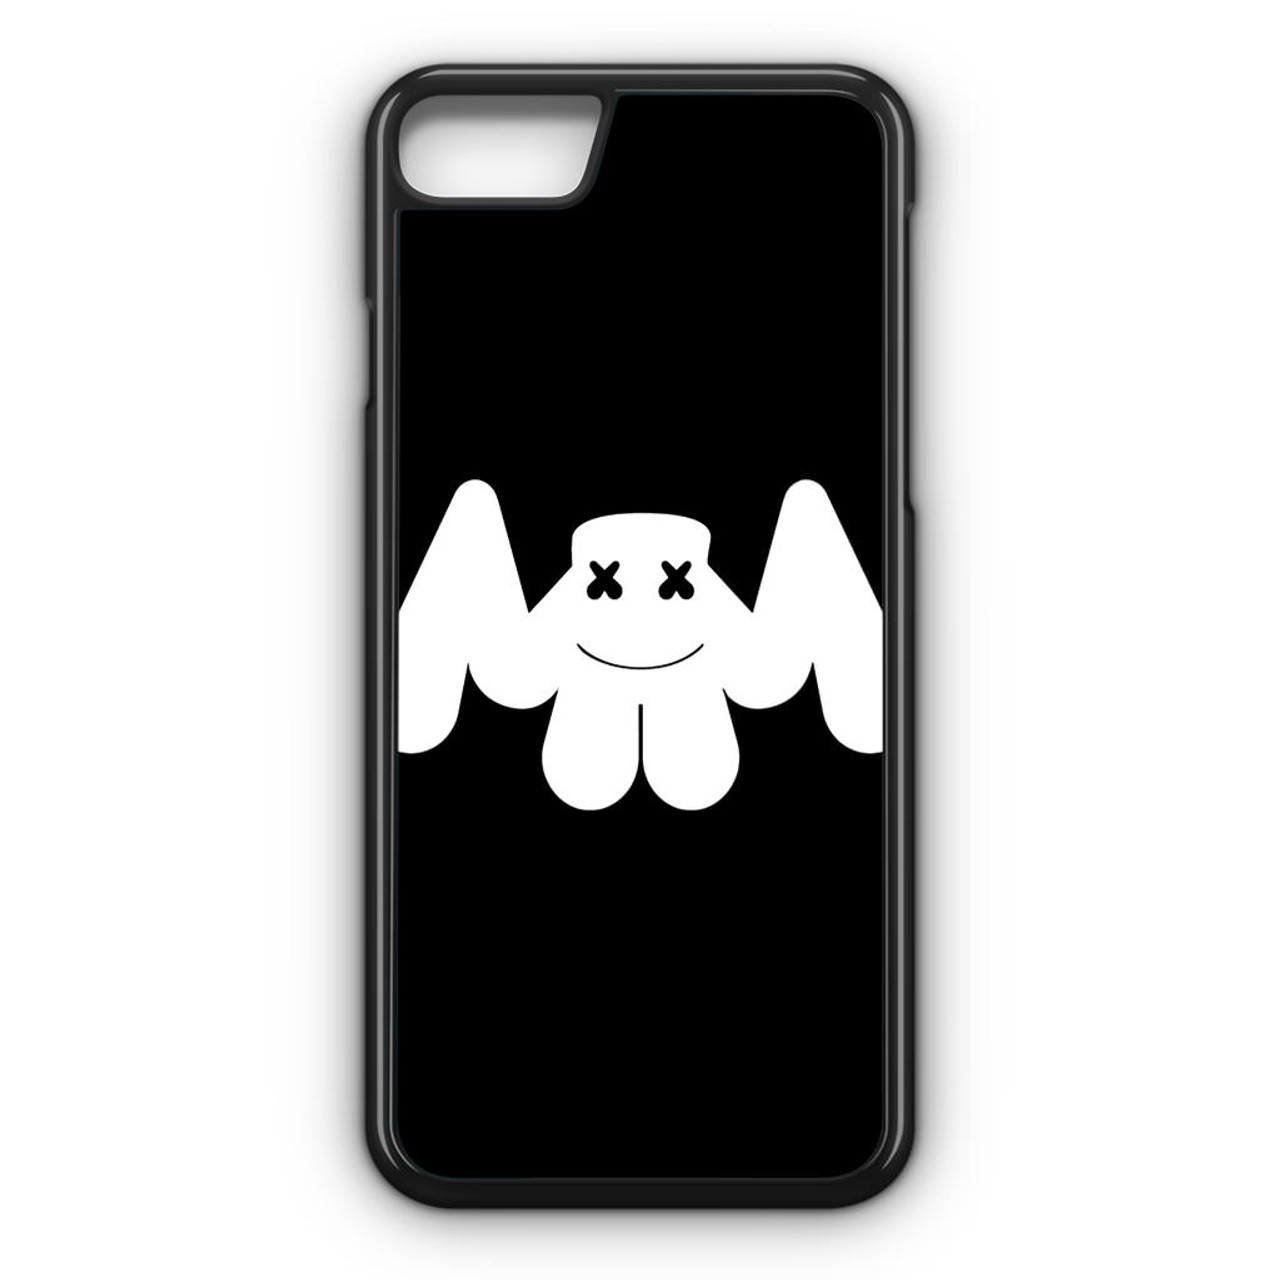 marshmello logo dark iphone